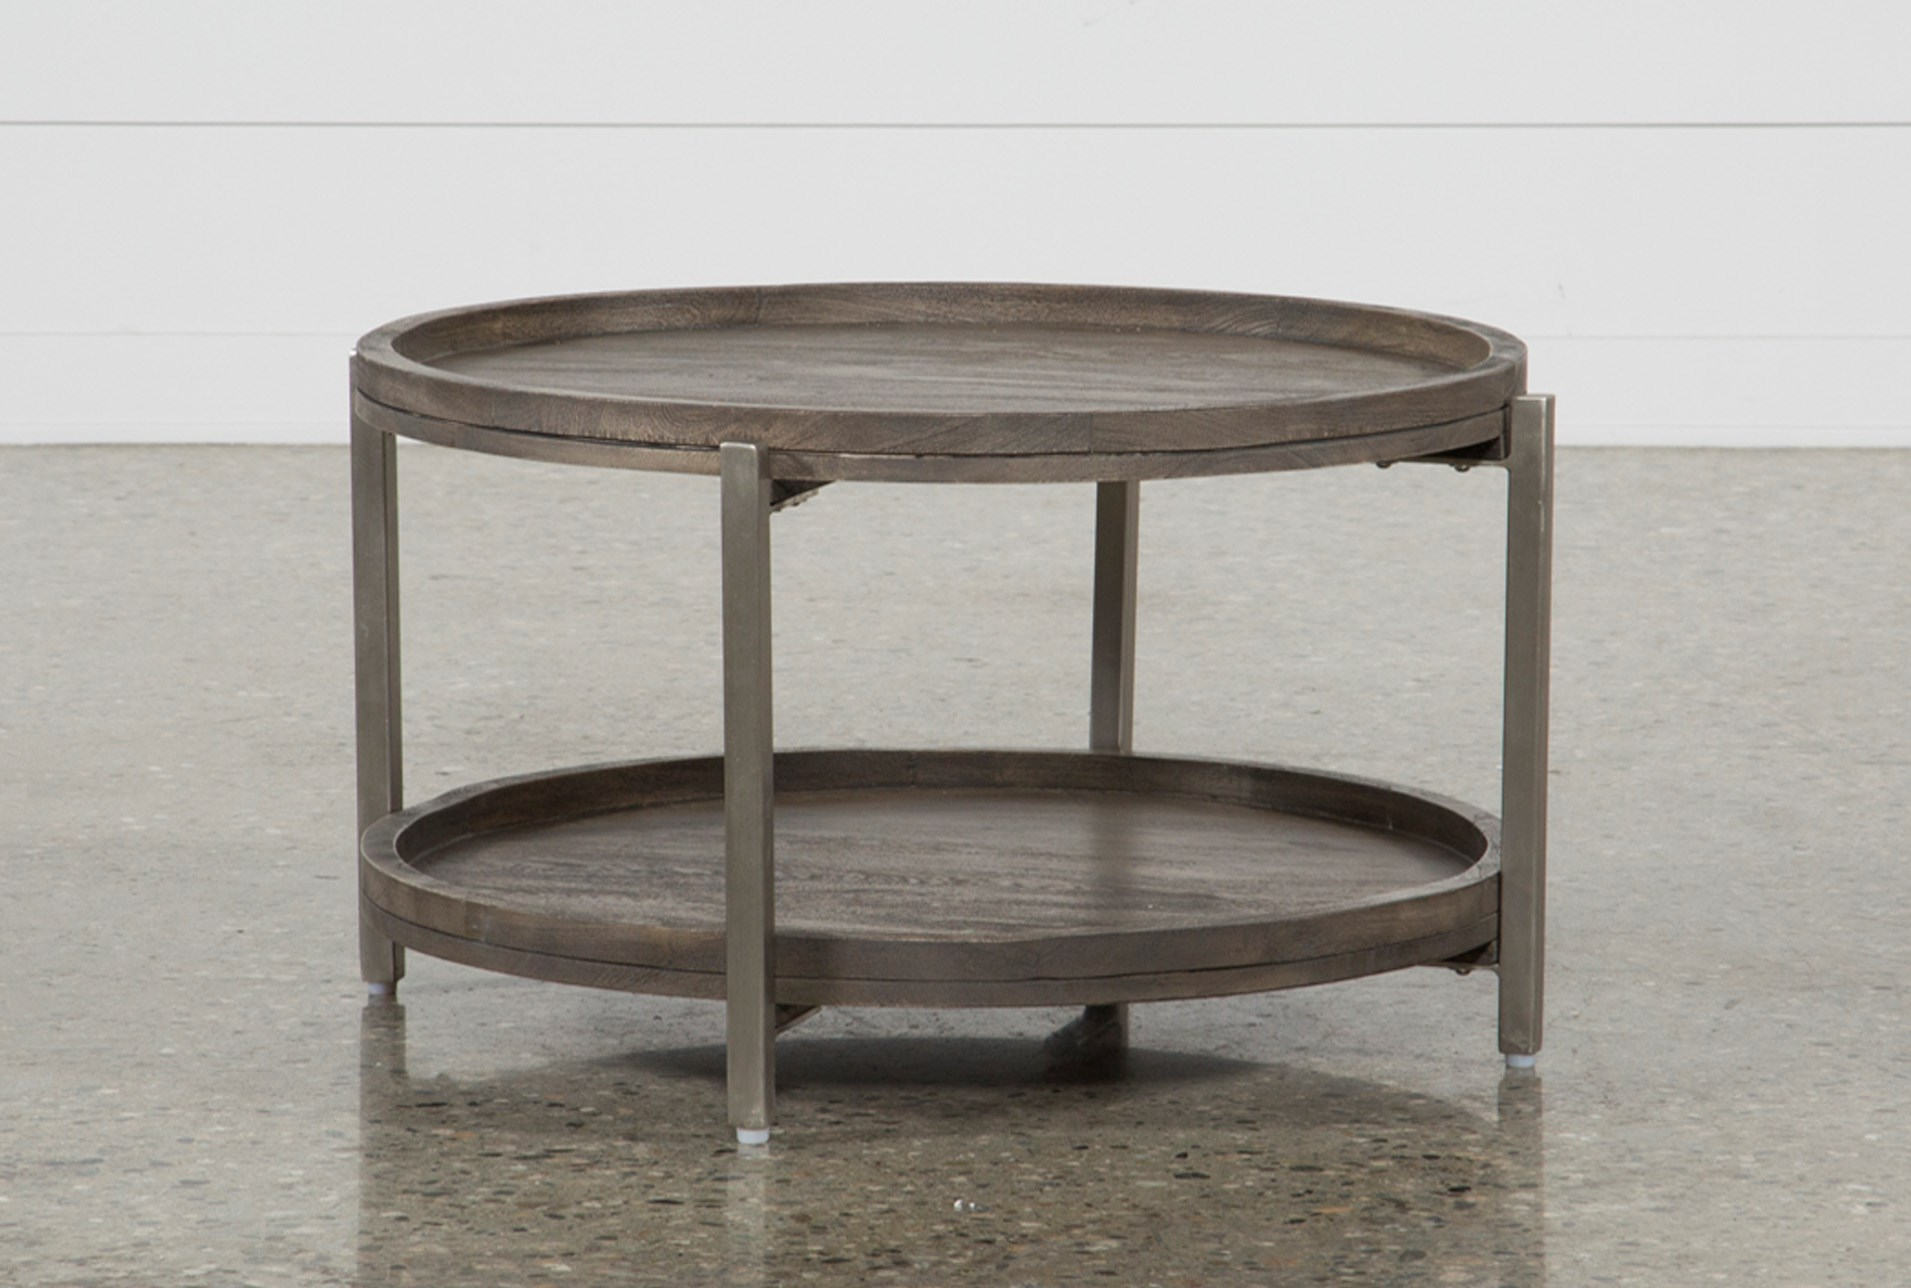 Round Coffee Table Wood.Swell Round Coffee Table